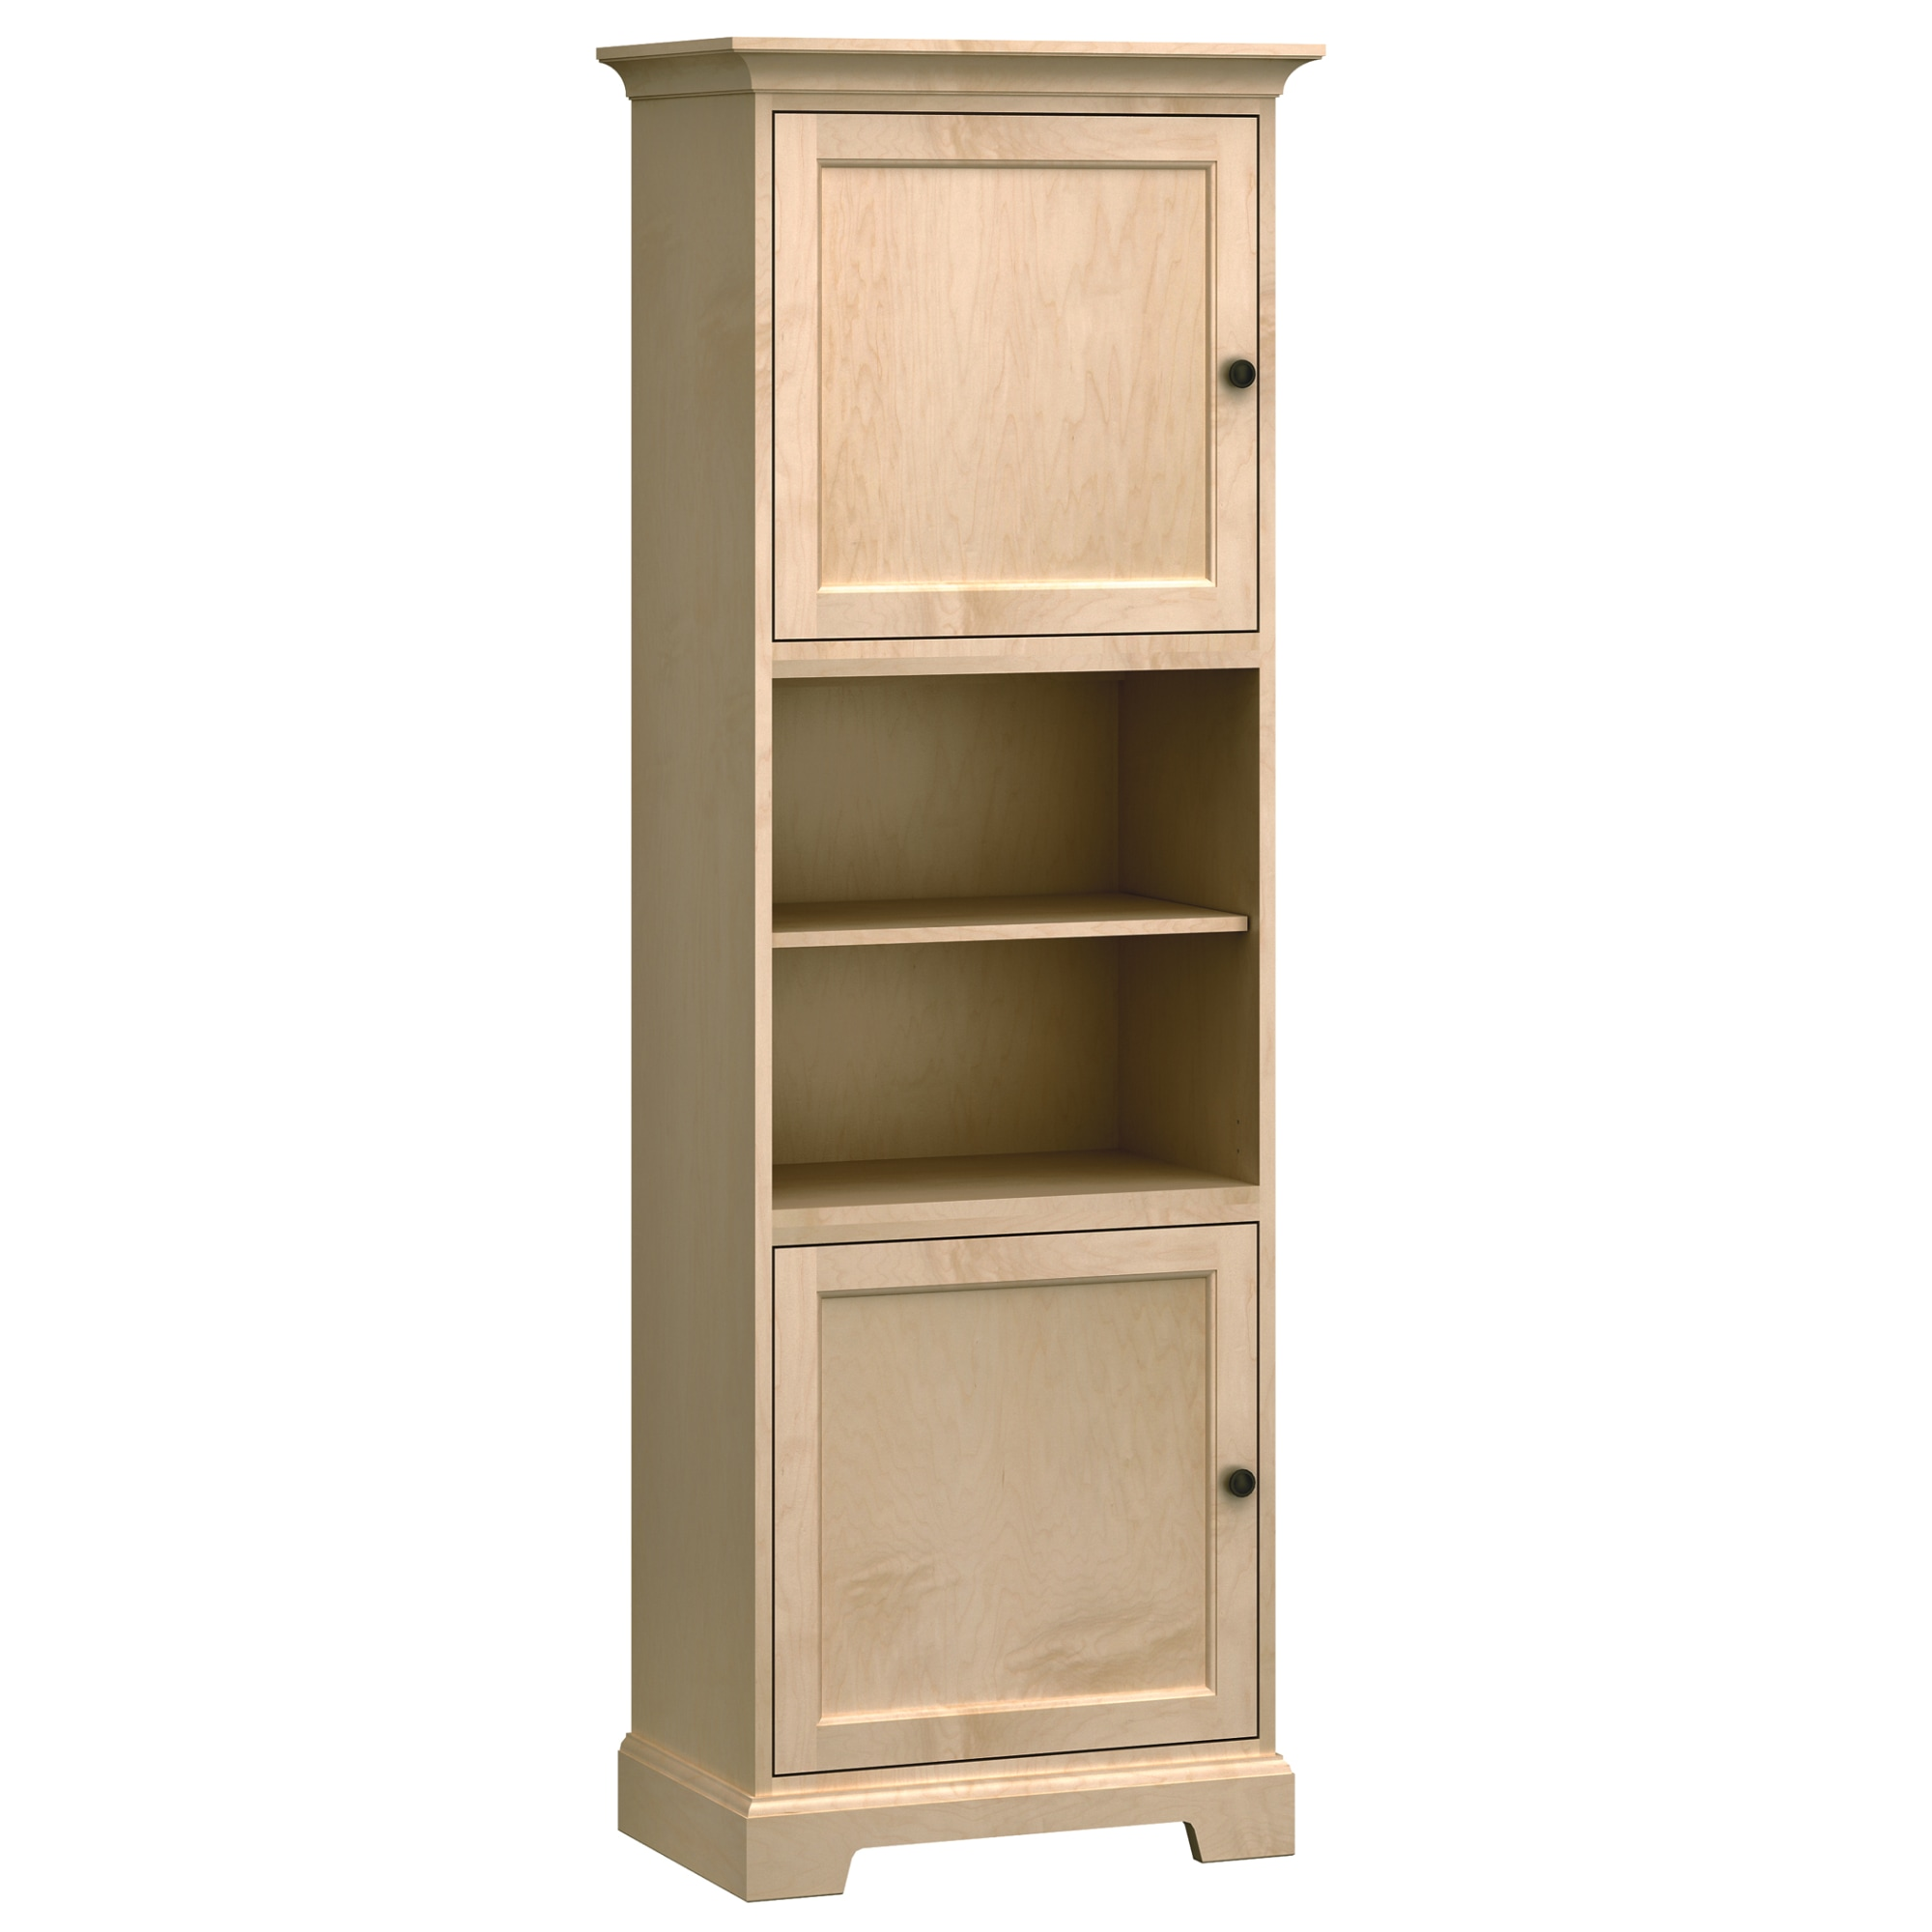 Image for HS27L Custom Home Storage Cabinet from Howard Miller Official Website